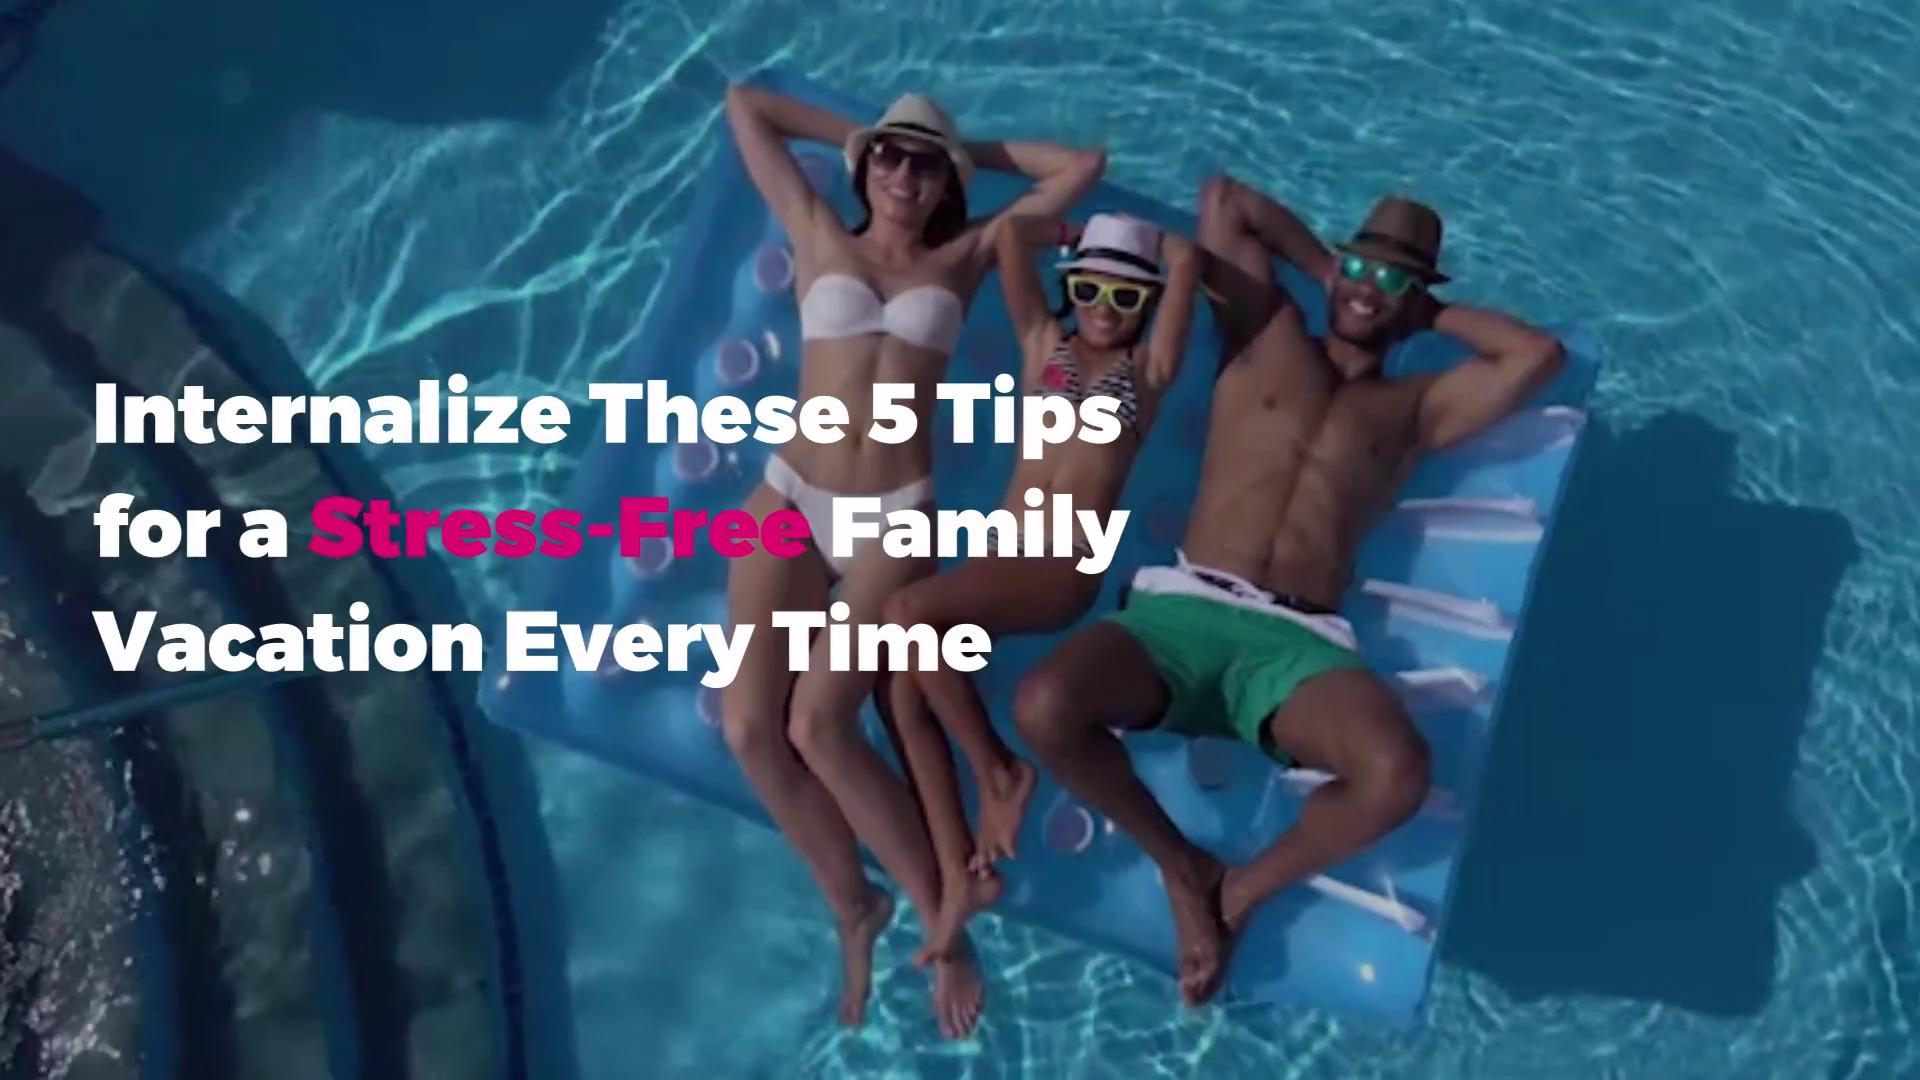 Internalize These 5 Tips for a Stress-Free Family Vacation Every Time